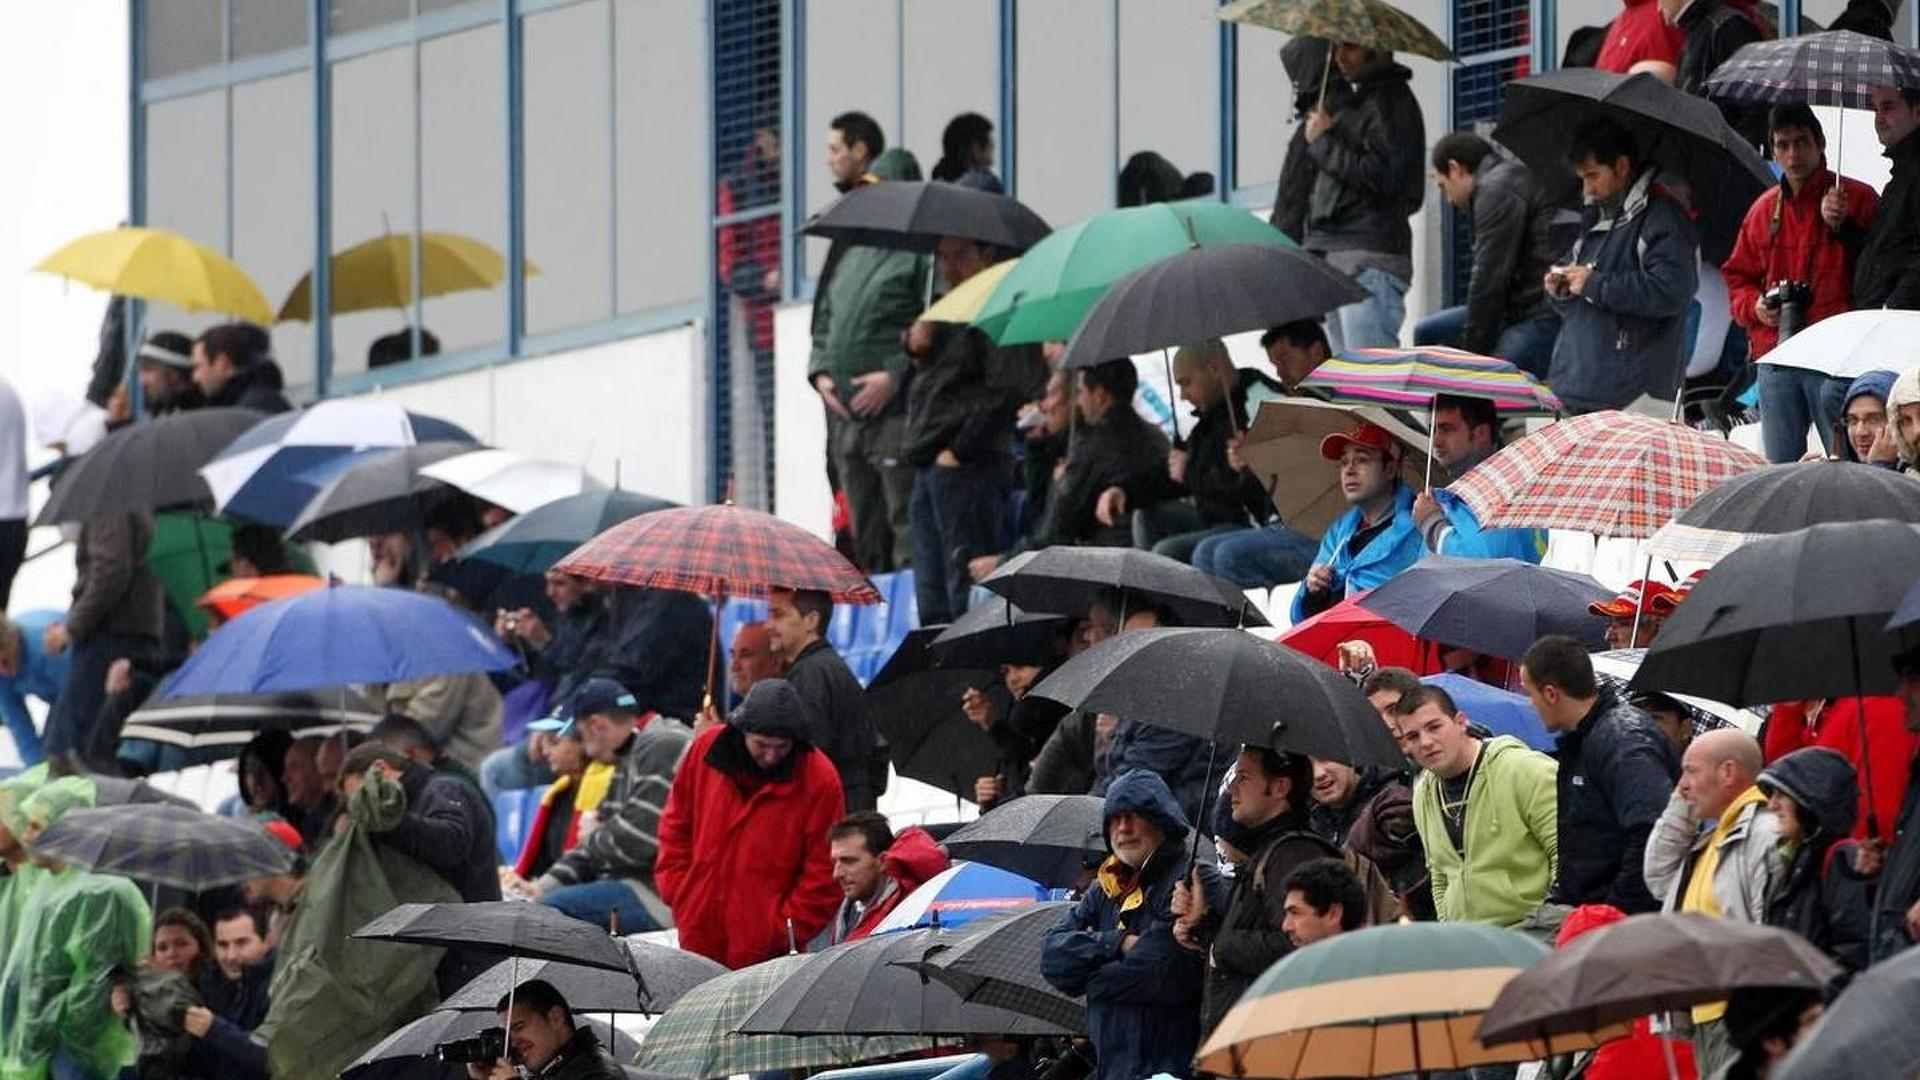 Fans carry umbrellas into Spa for thrilling race